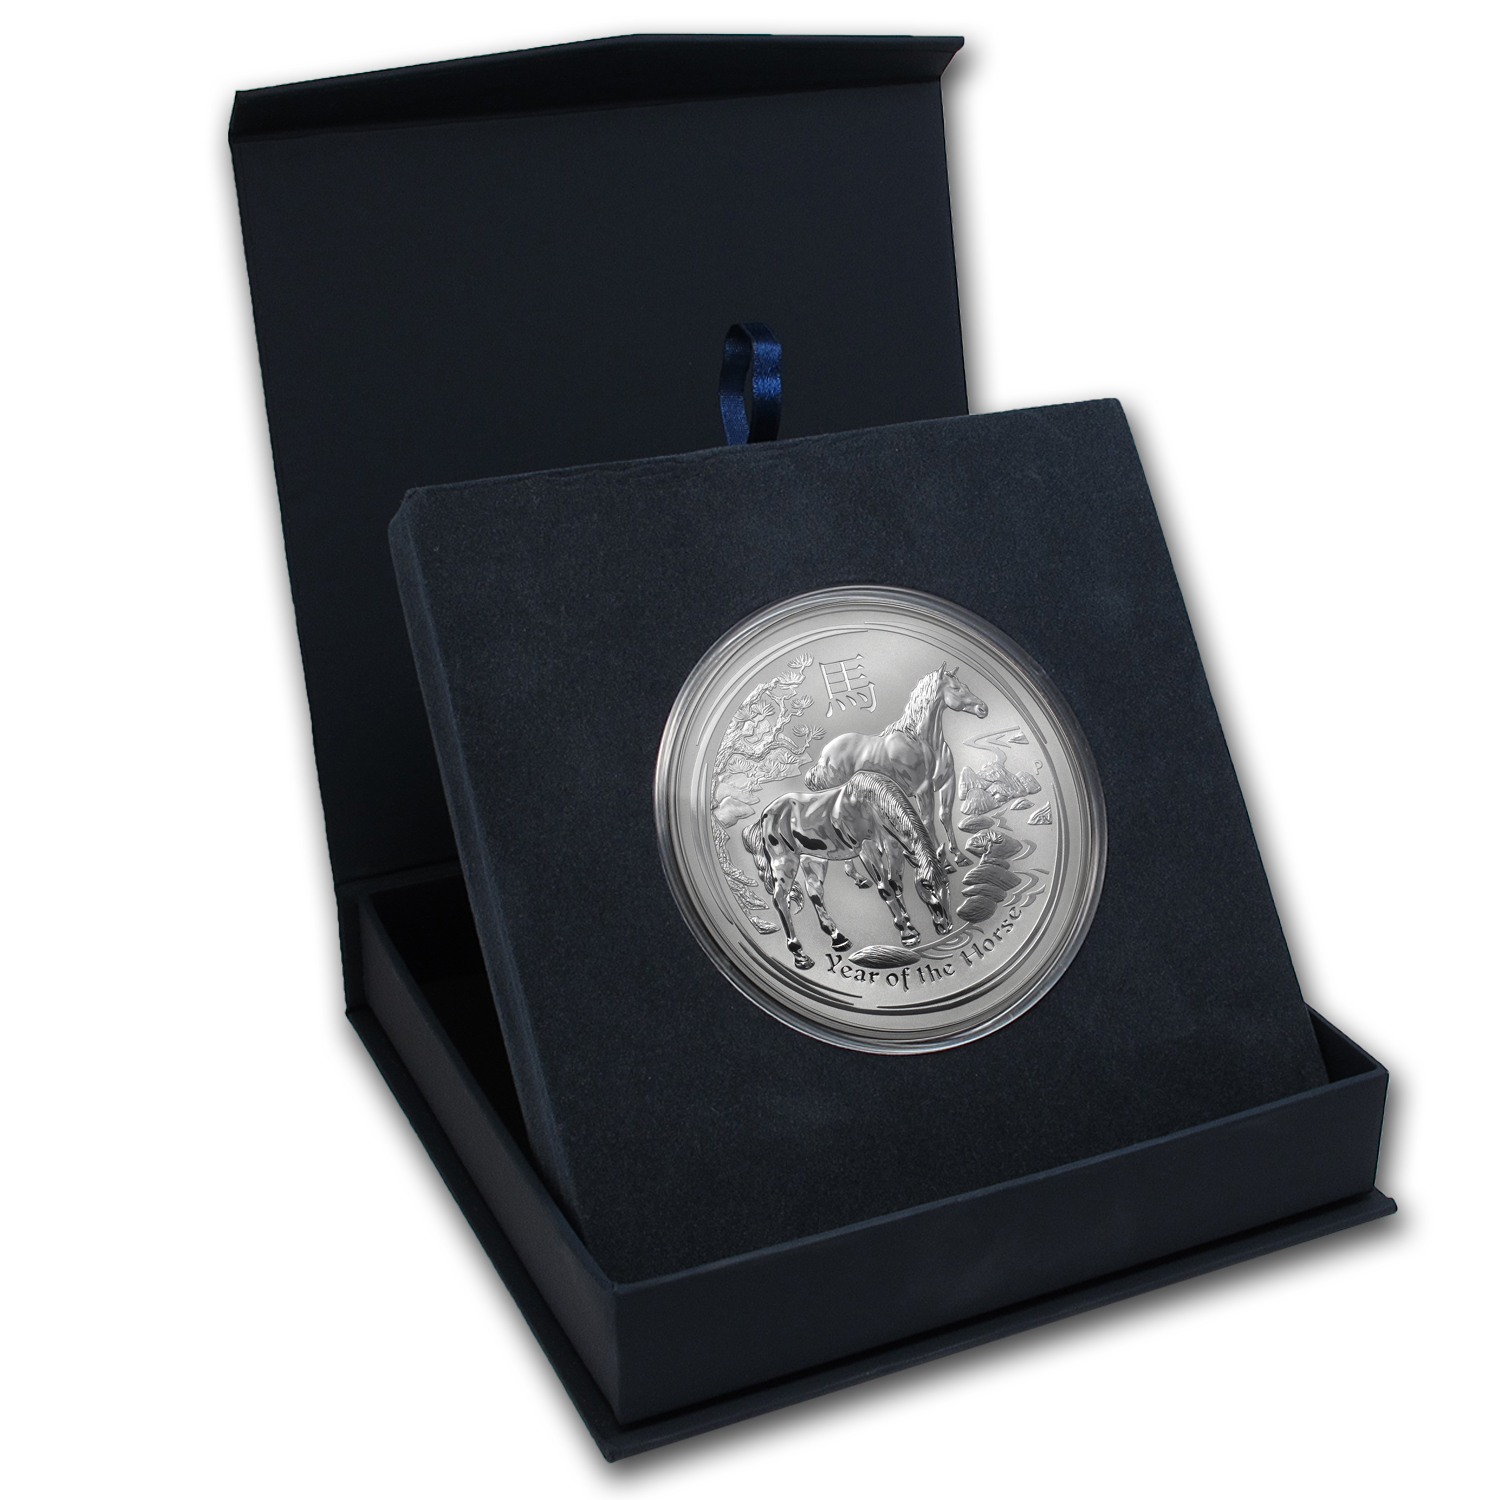 APMEX Gift Box - 10 oz Perth Mint Silver Coin Series 2